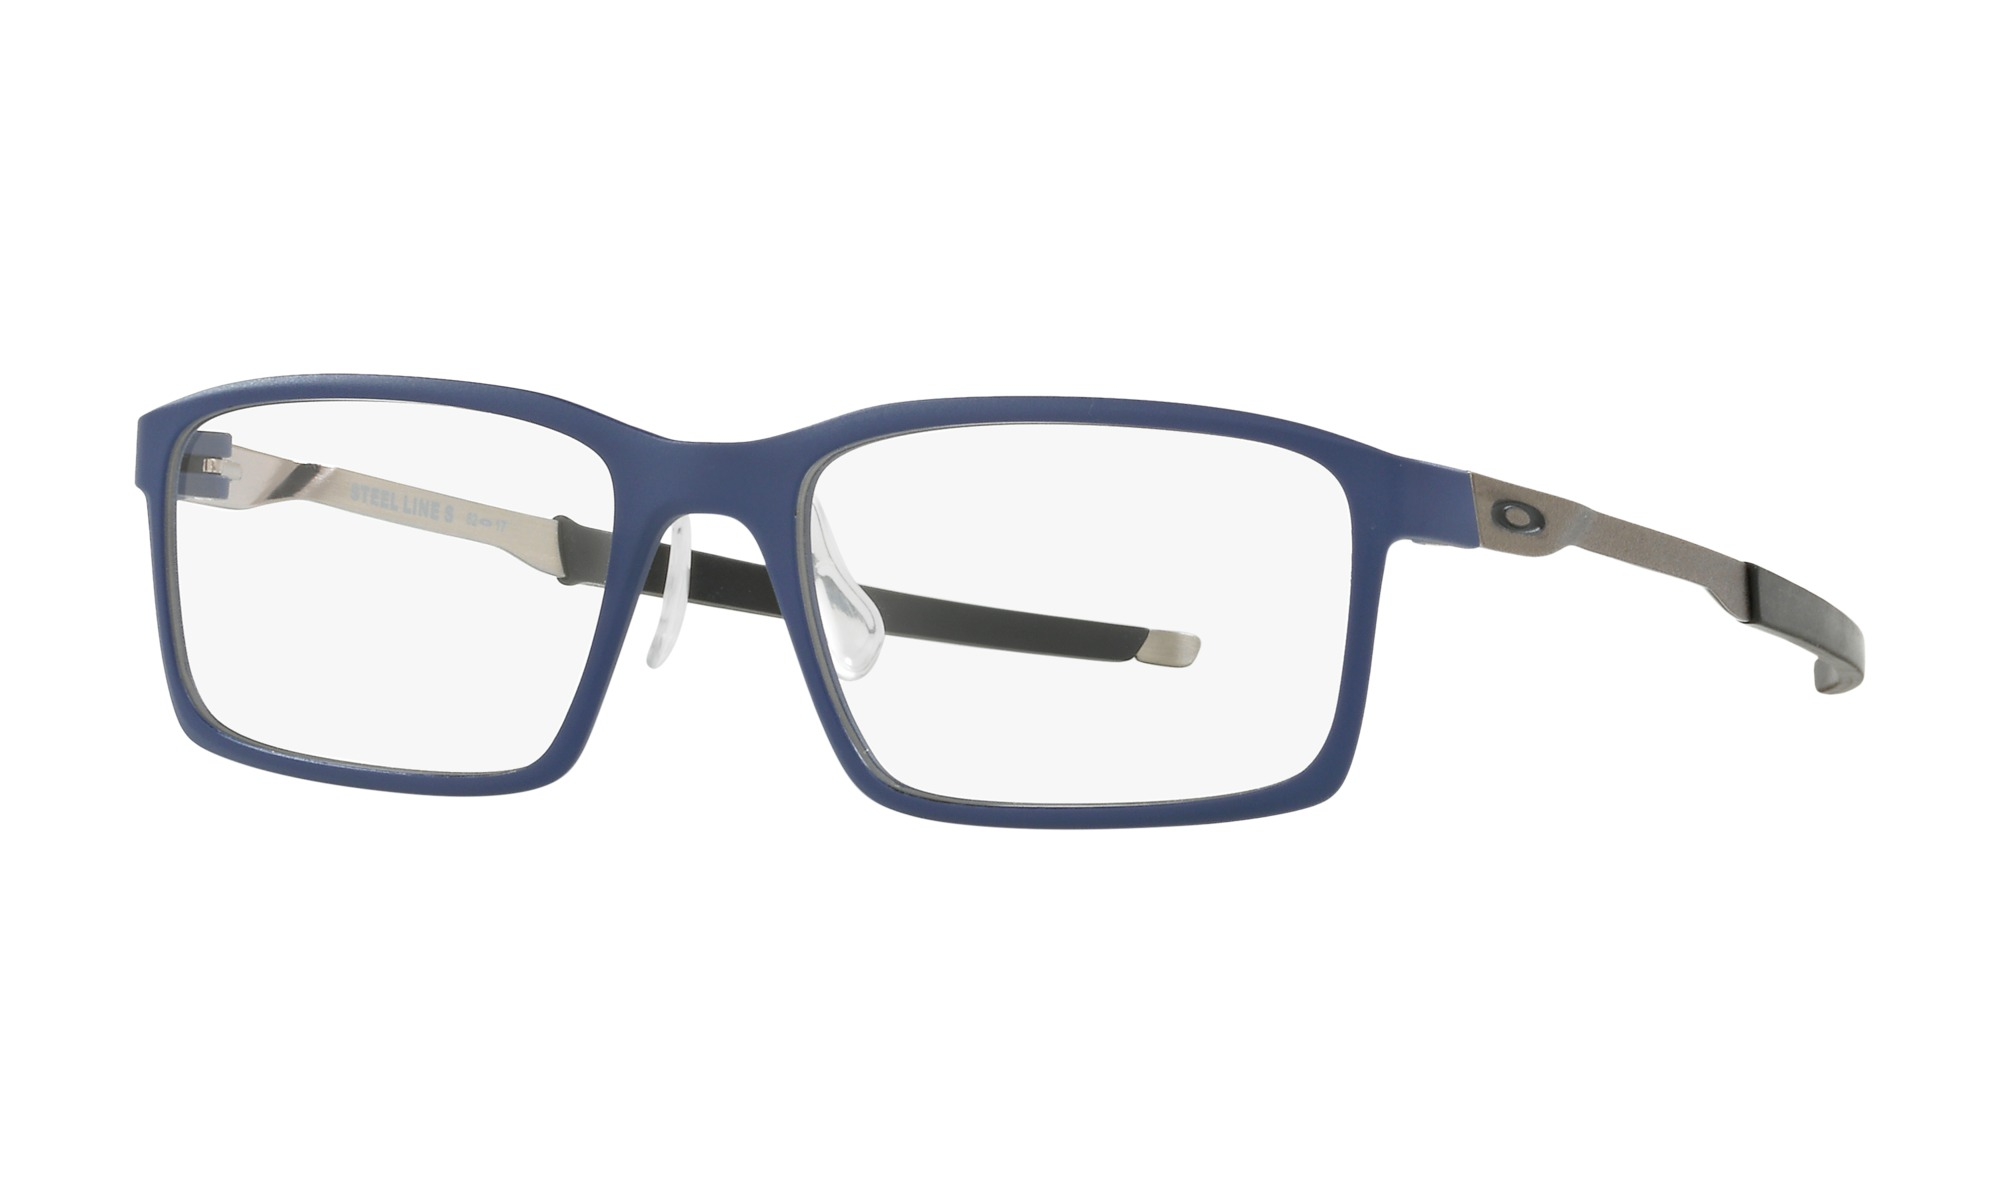 Oakley Men's Steel Line S Matte Denim Eyeglasses